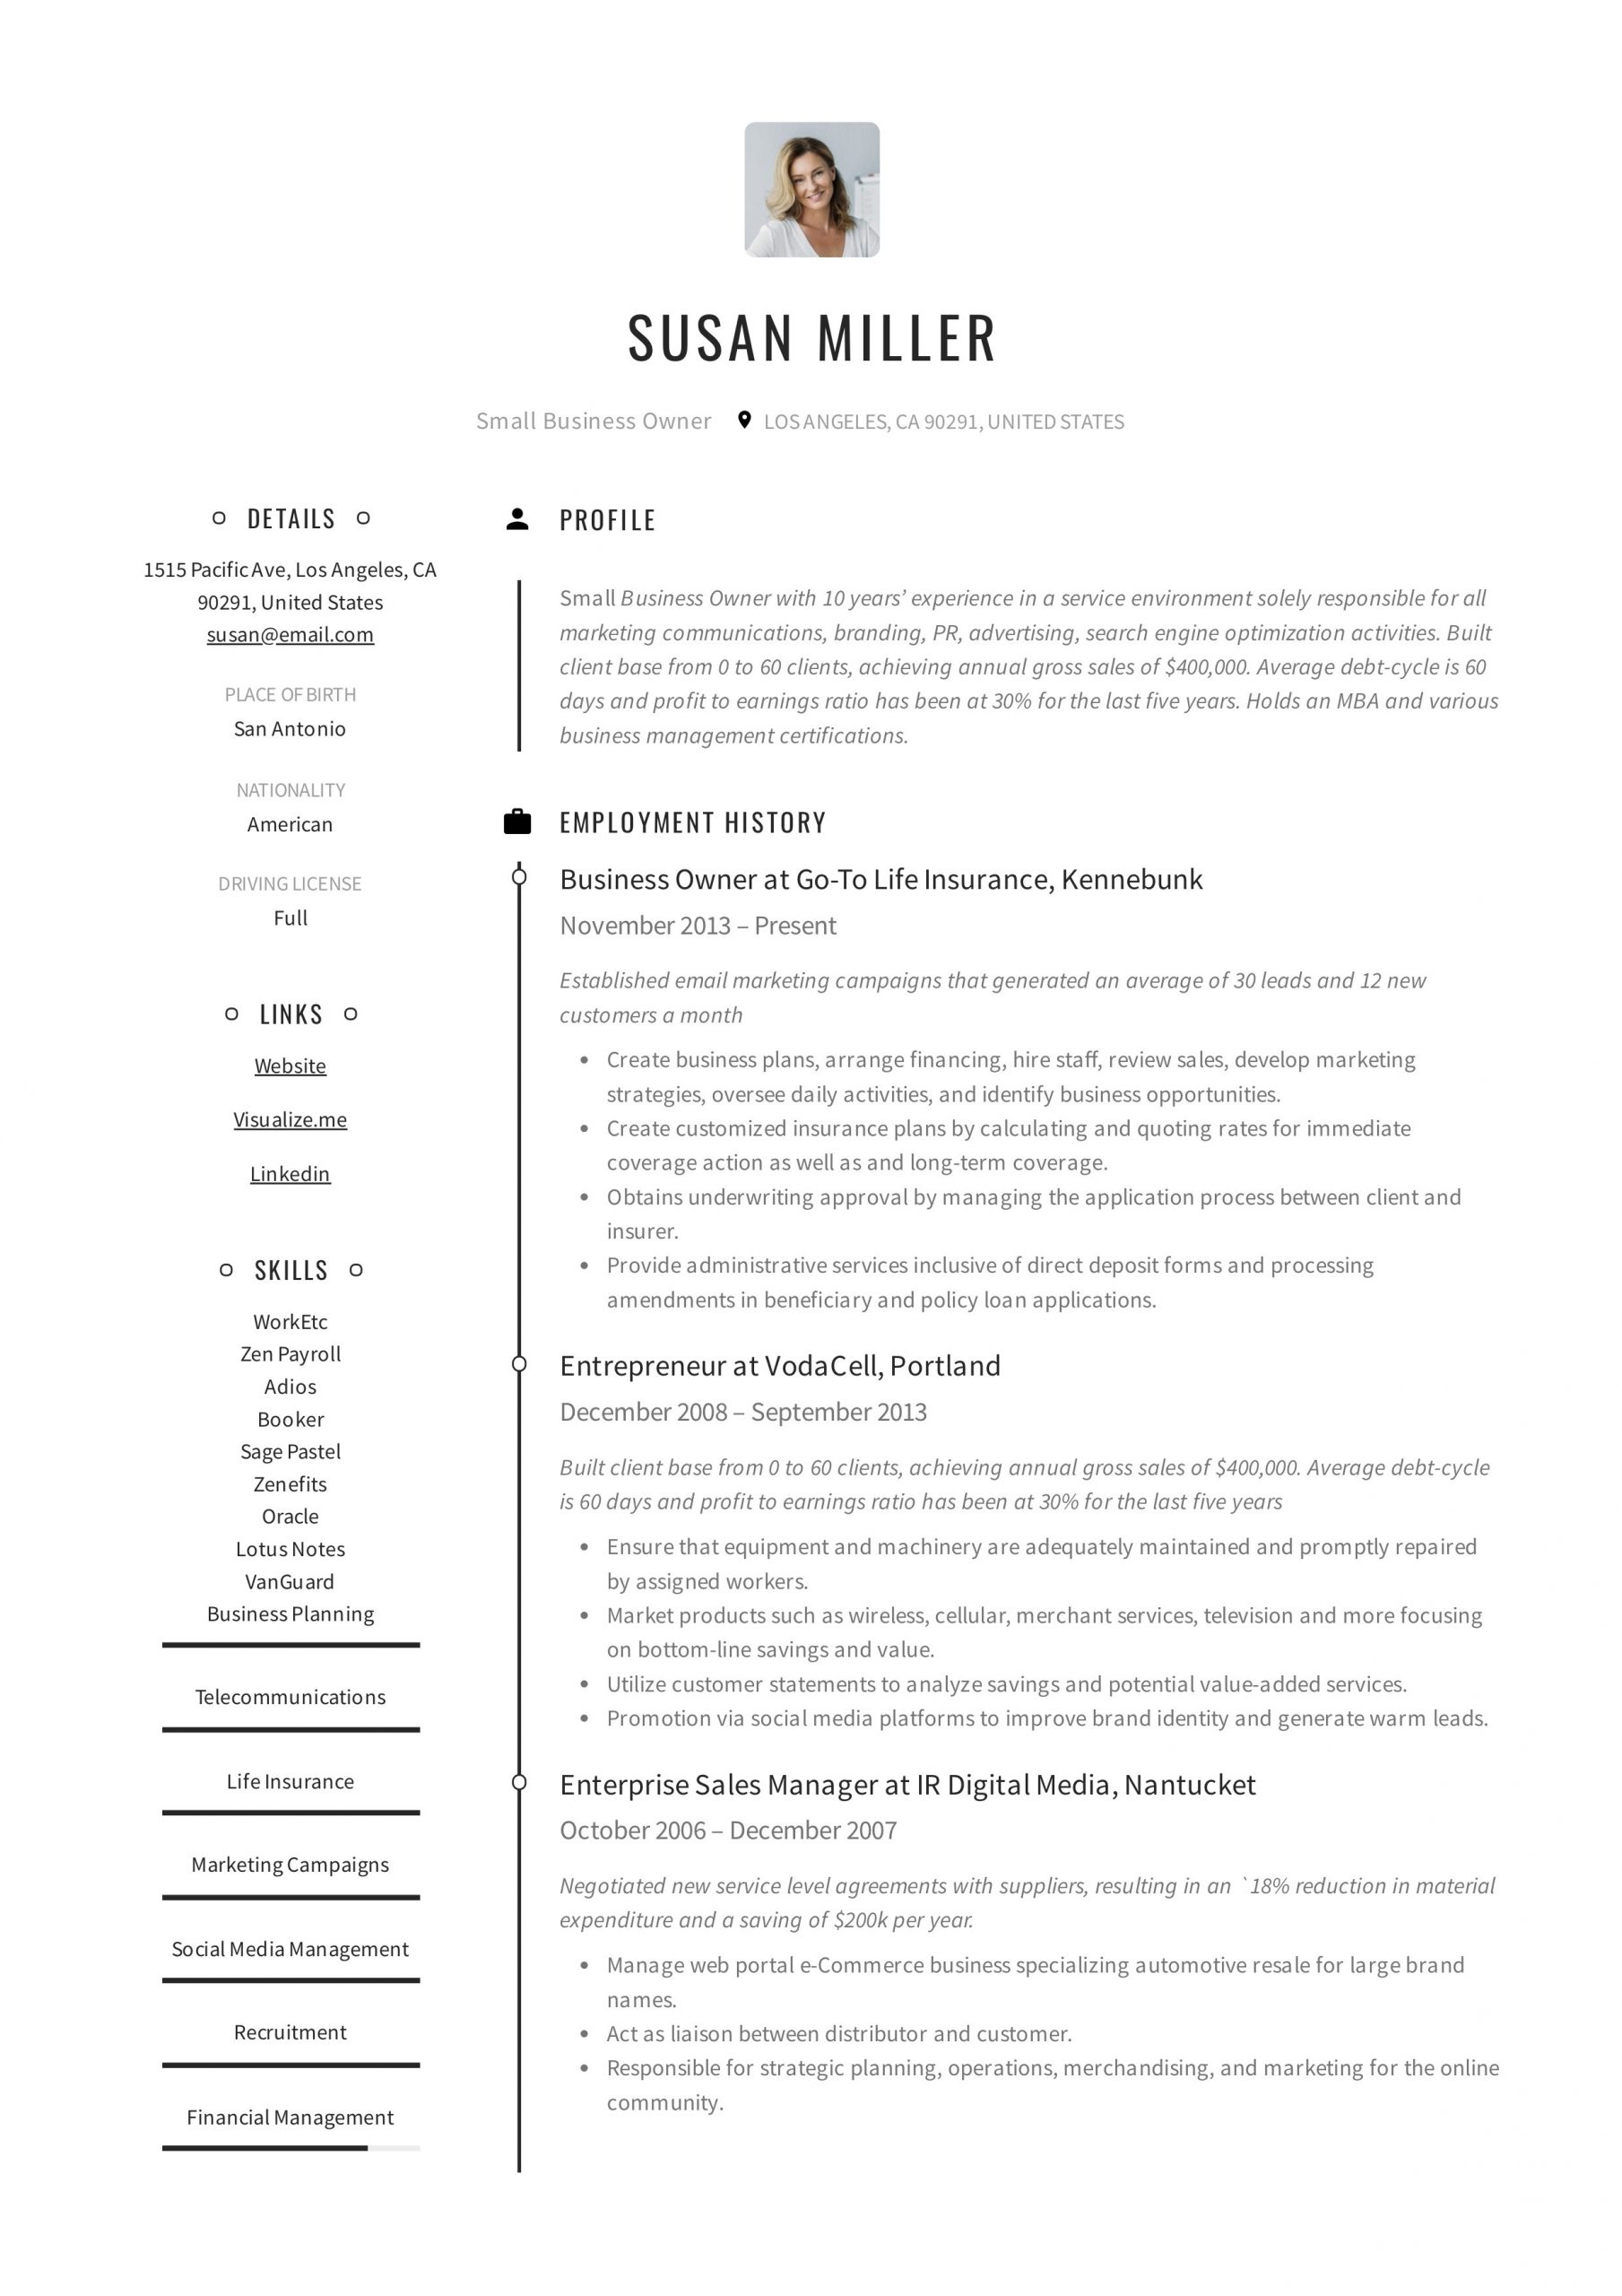 Sample Resume Cleaning Company Owner Manager Small Business Owner Resume Guide  19 Examples Pdf 2020